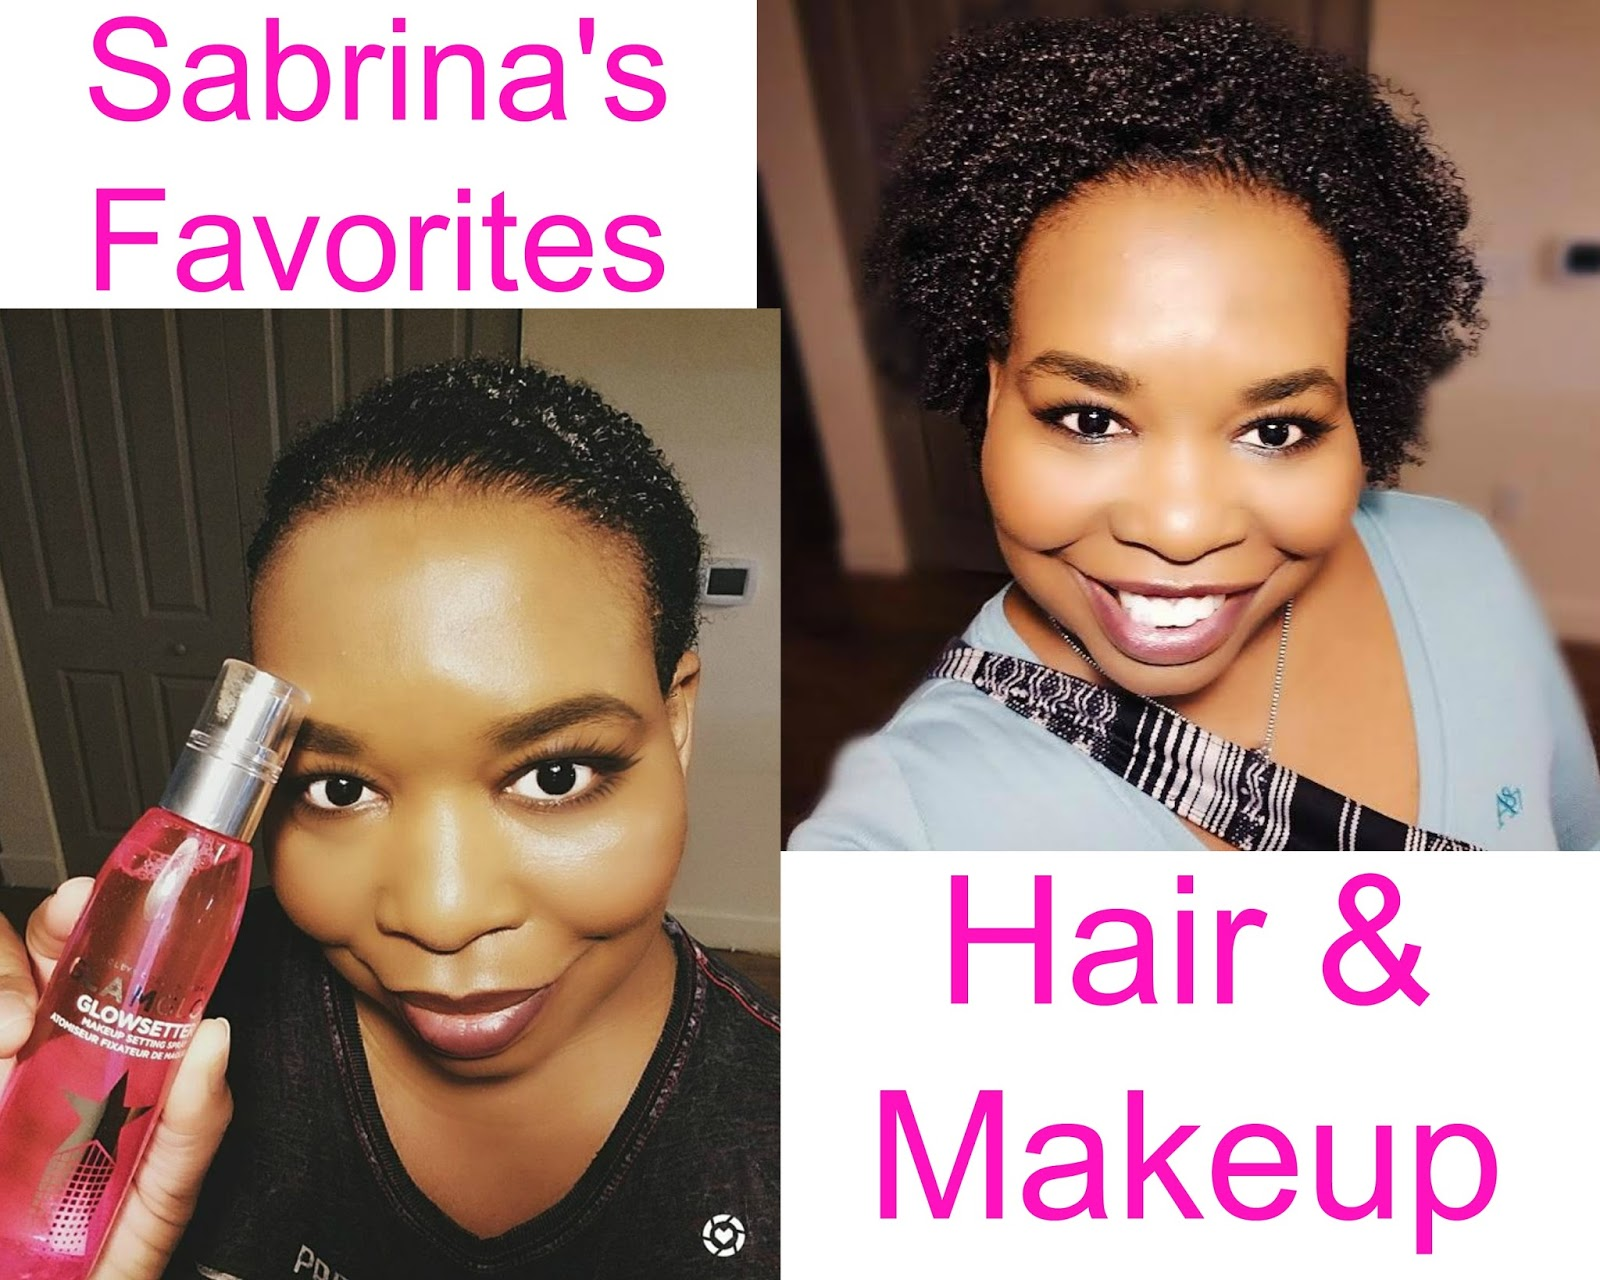 Check out my favorite hair and makeup products in my Amazon Shop that I absolutelylove! There's something here for everybody!